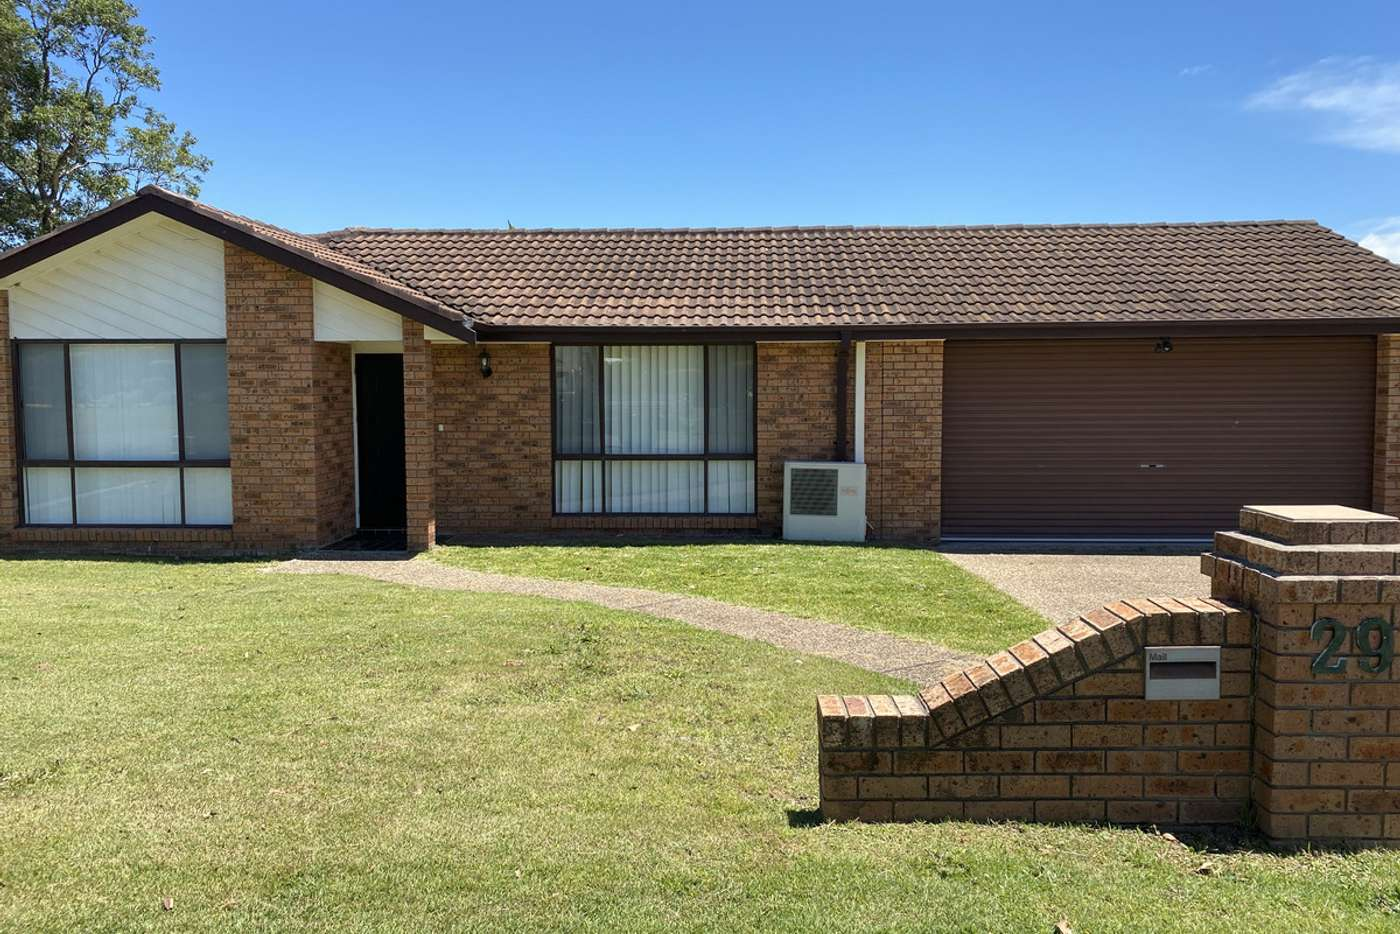 Main view of Homely house listing, 29 Holford Crescent, Thornton NSW 2322